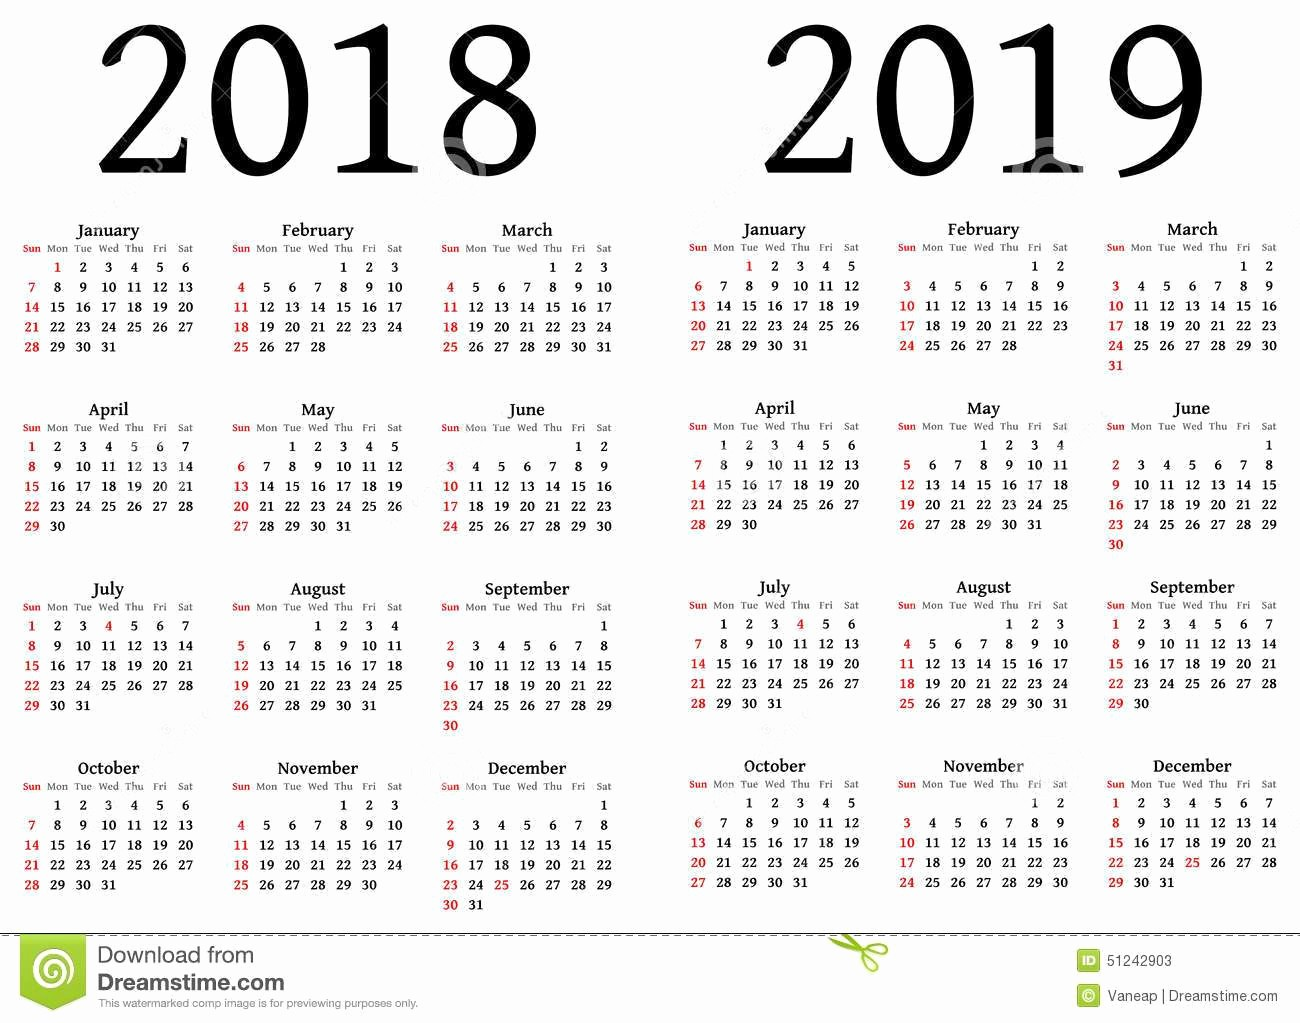 2018 and 2019 Printable Calendar Awesome Julian Calendar 2018 and 2019